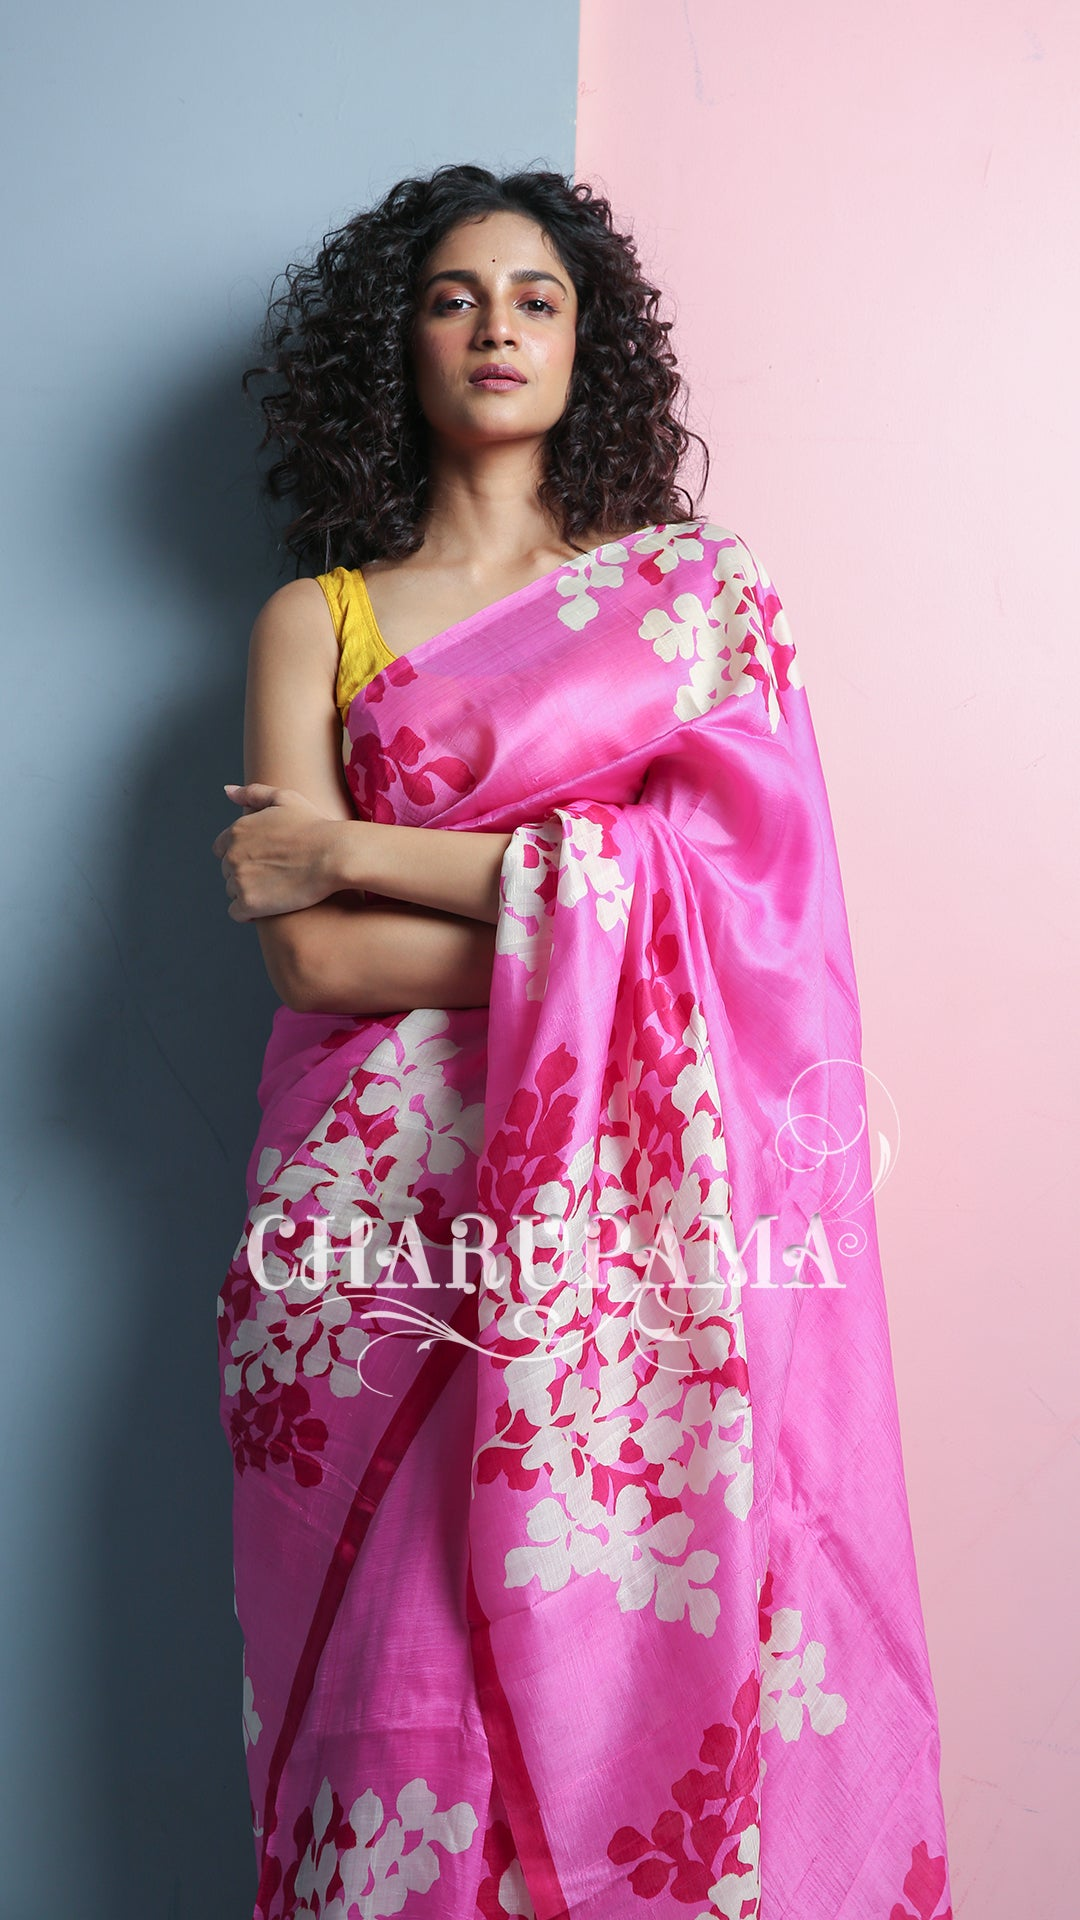 Purely Hand Oven Fine Quality Silk From Bengals Own Murshidabad Districts. Very Light Weight Saree Combined In Baby Pink And Red Floral Hand Print. Perfect For All Season.